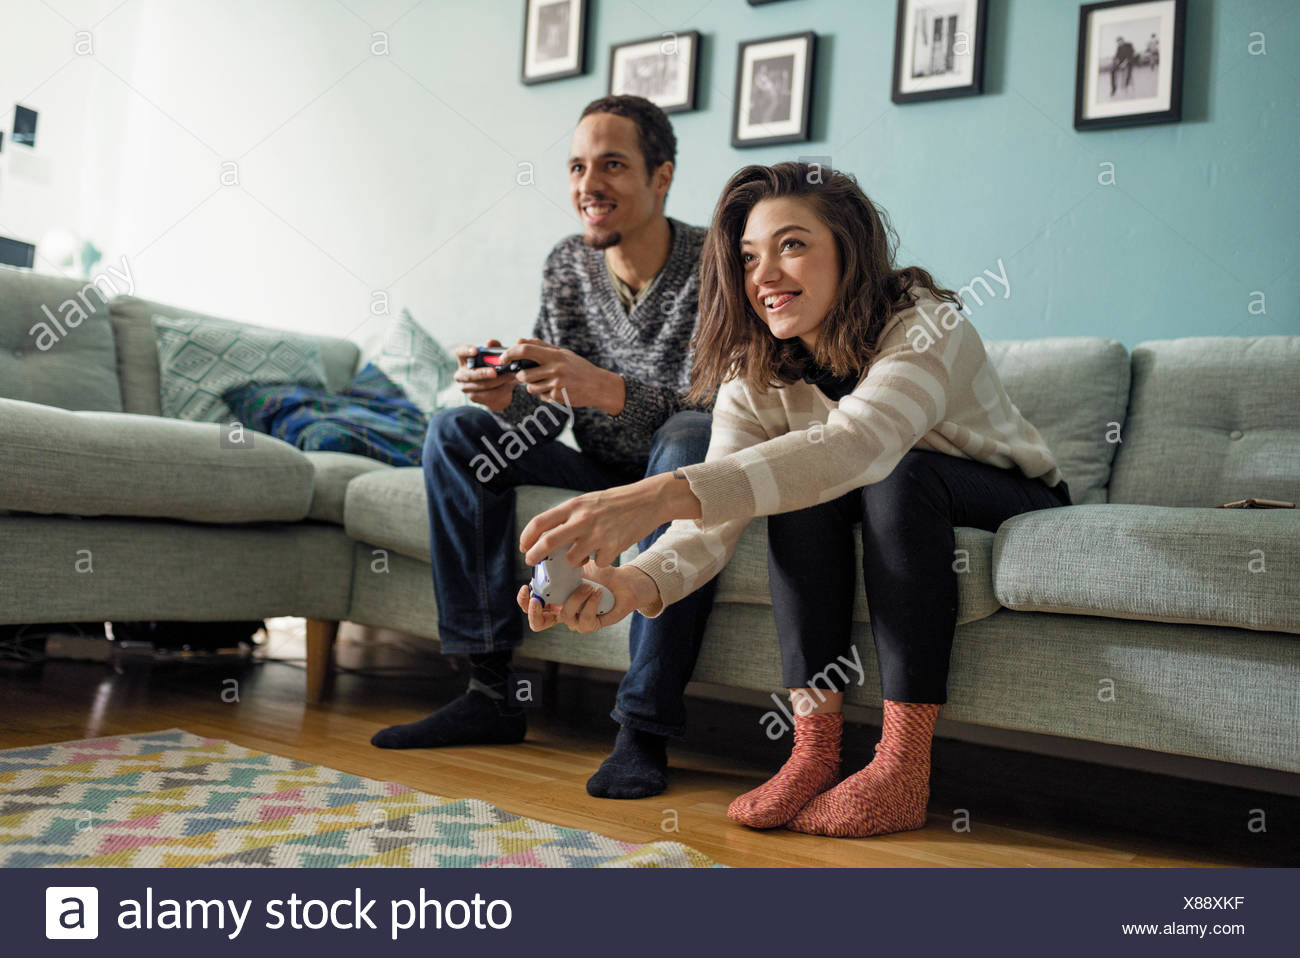 Sweden, Young couple playing video games in living room - Stock Image